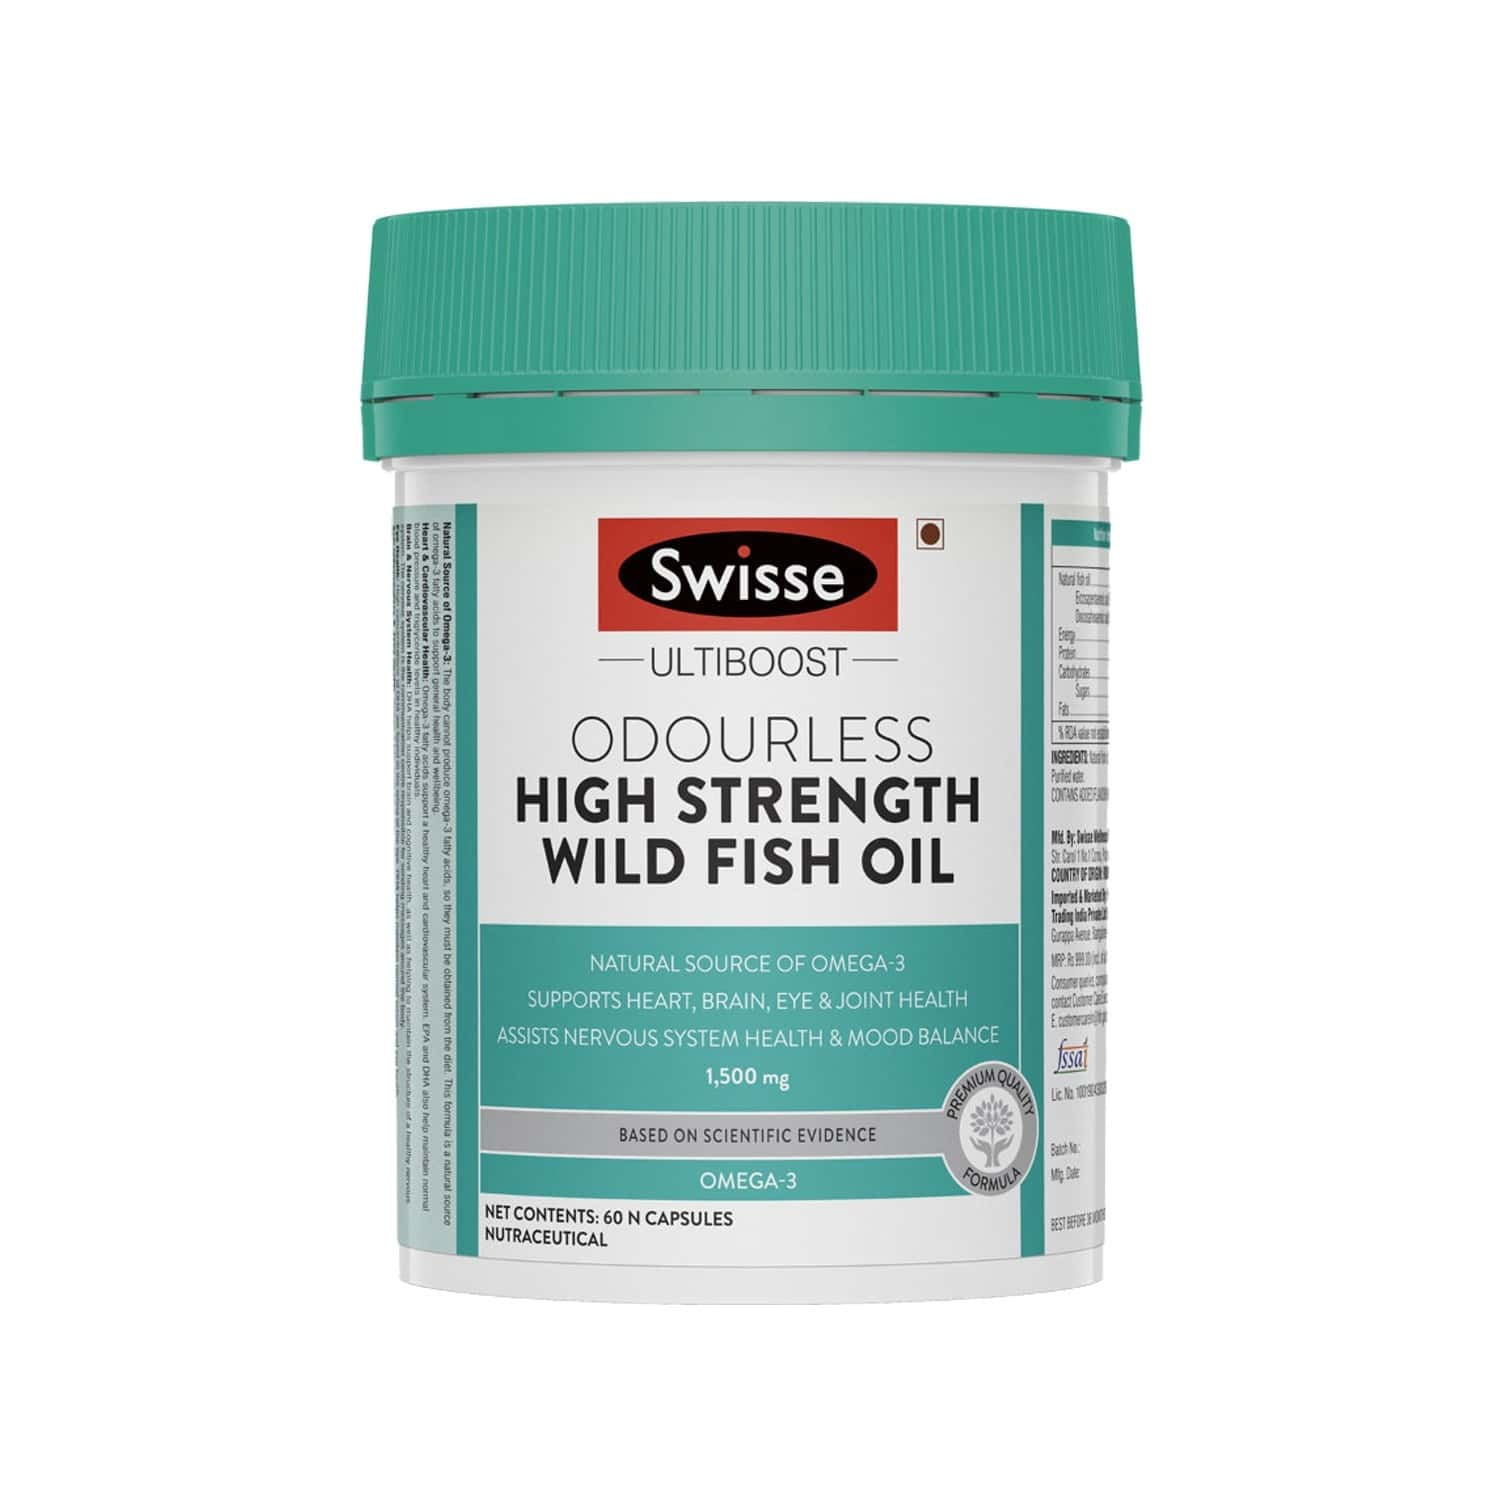 Swisse Ultiboost Odourless High Strength Wild Fish Oil With (1500 Mg) Omega 3 For Heart, Brain, Joints And Eyes - 90 Capsules